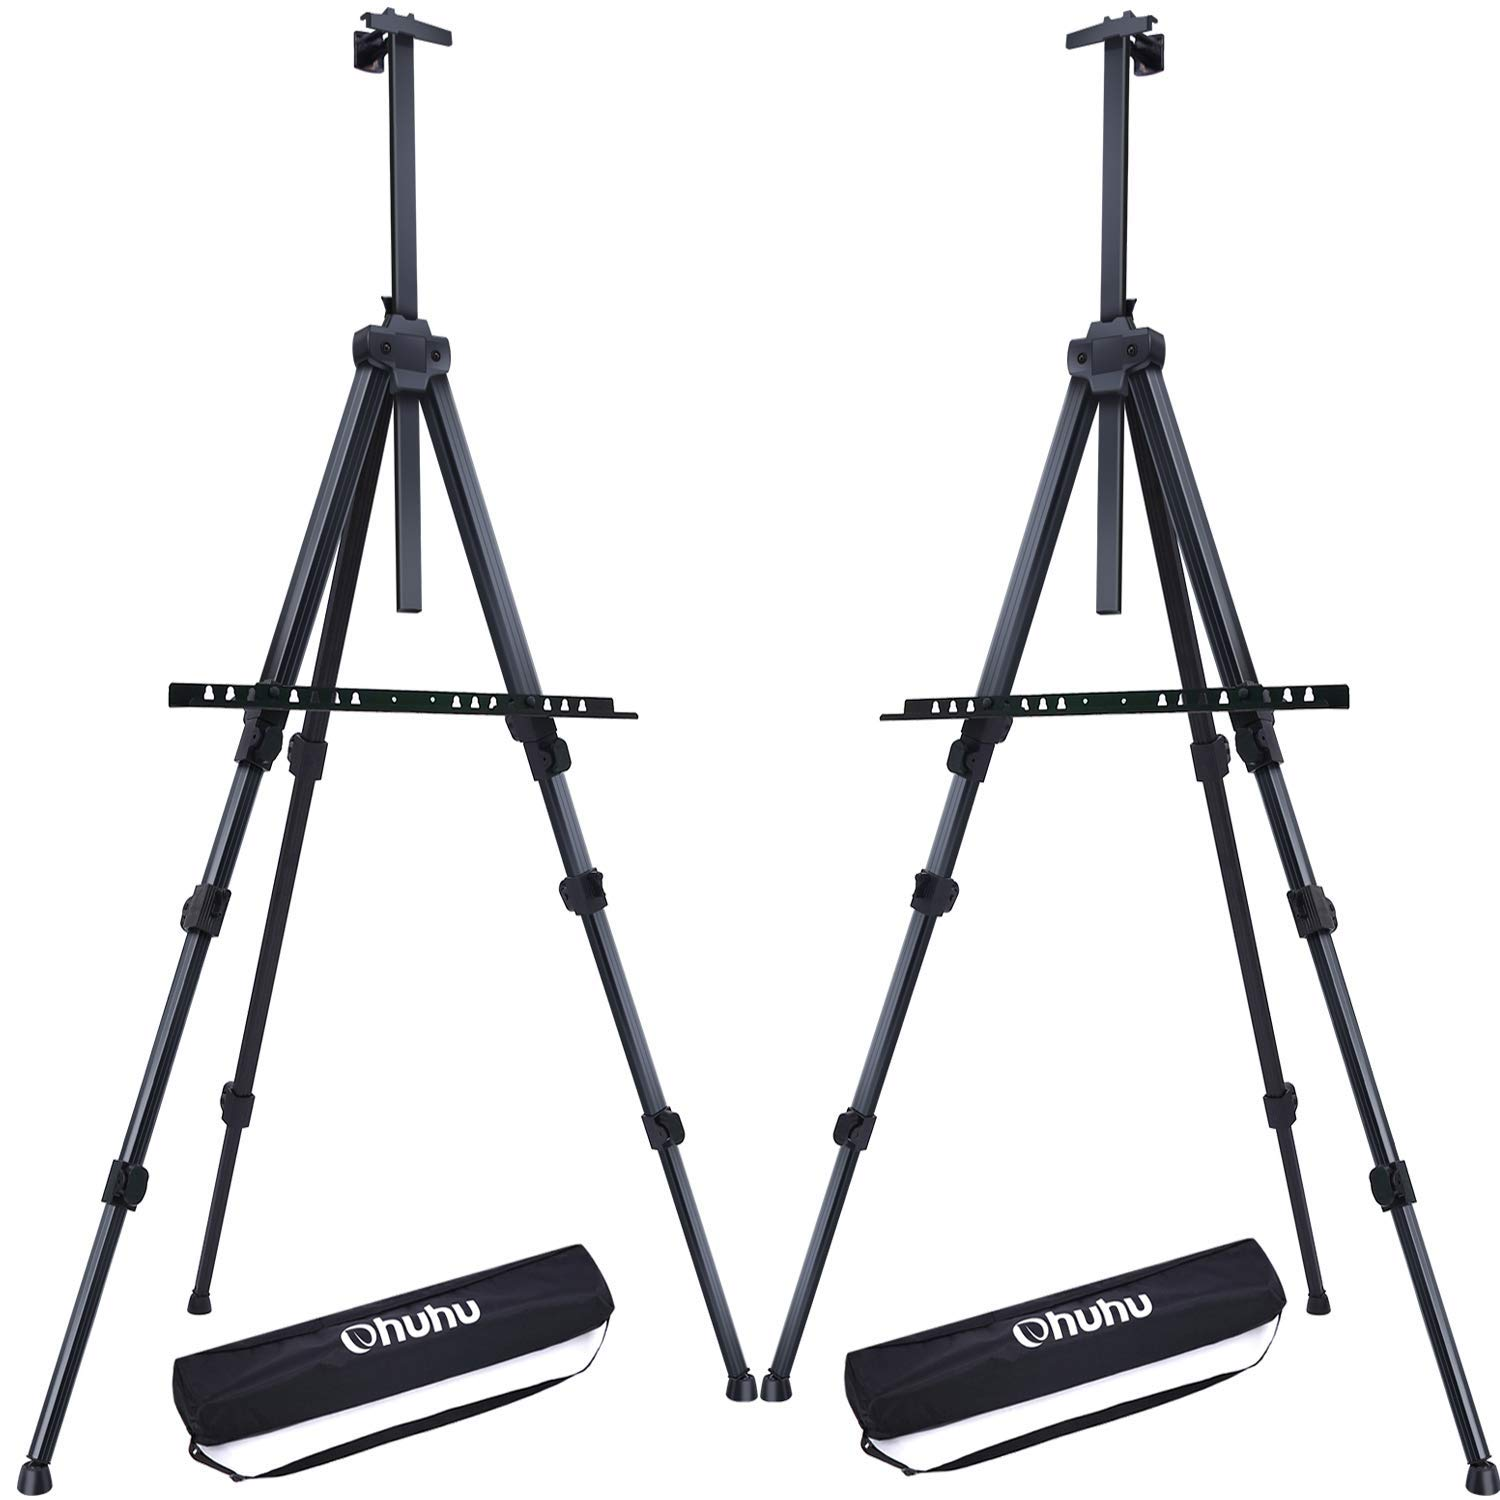 Display Easel Stand, Ohuhu 72'' Aluminum Metal Tripod Field Easel with Bag for Table-Top/Floor, 2-Pack Black Art Easels W/Adjustable Height from 25-72'' for Poster, Paint Back to School (Renewed)